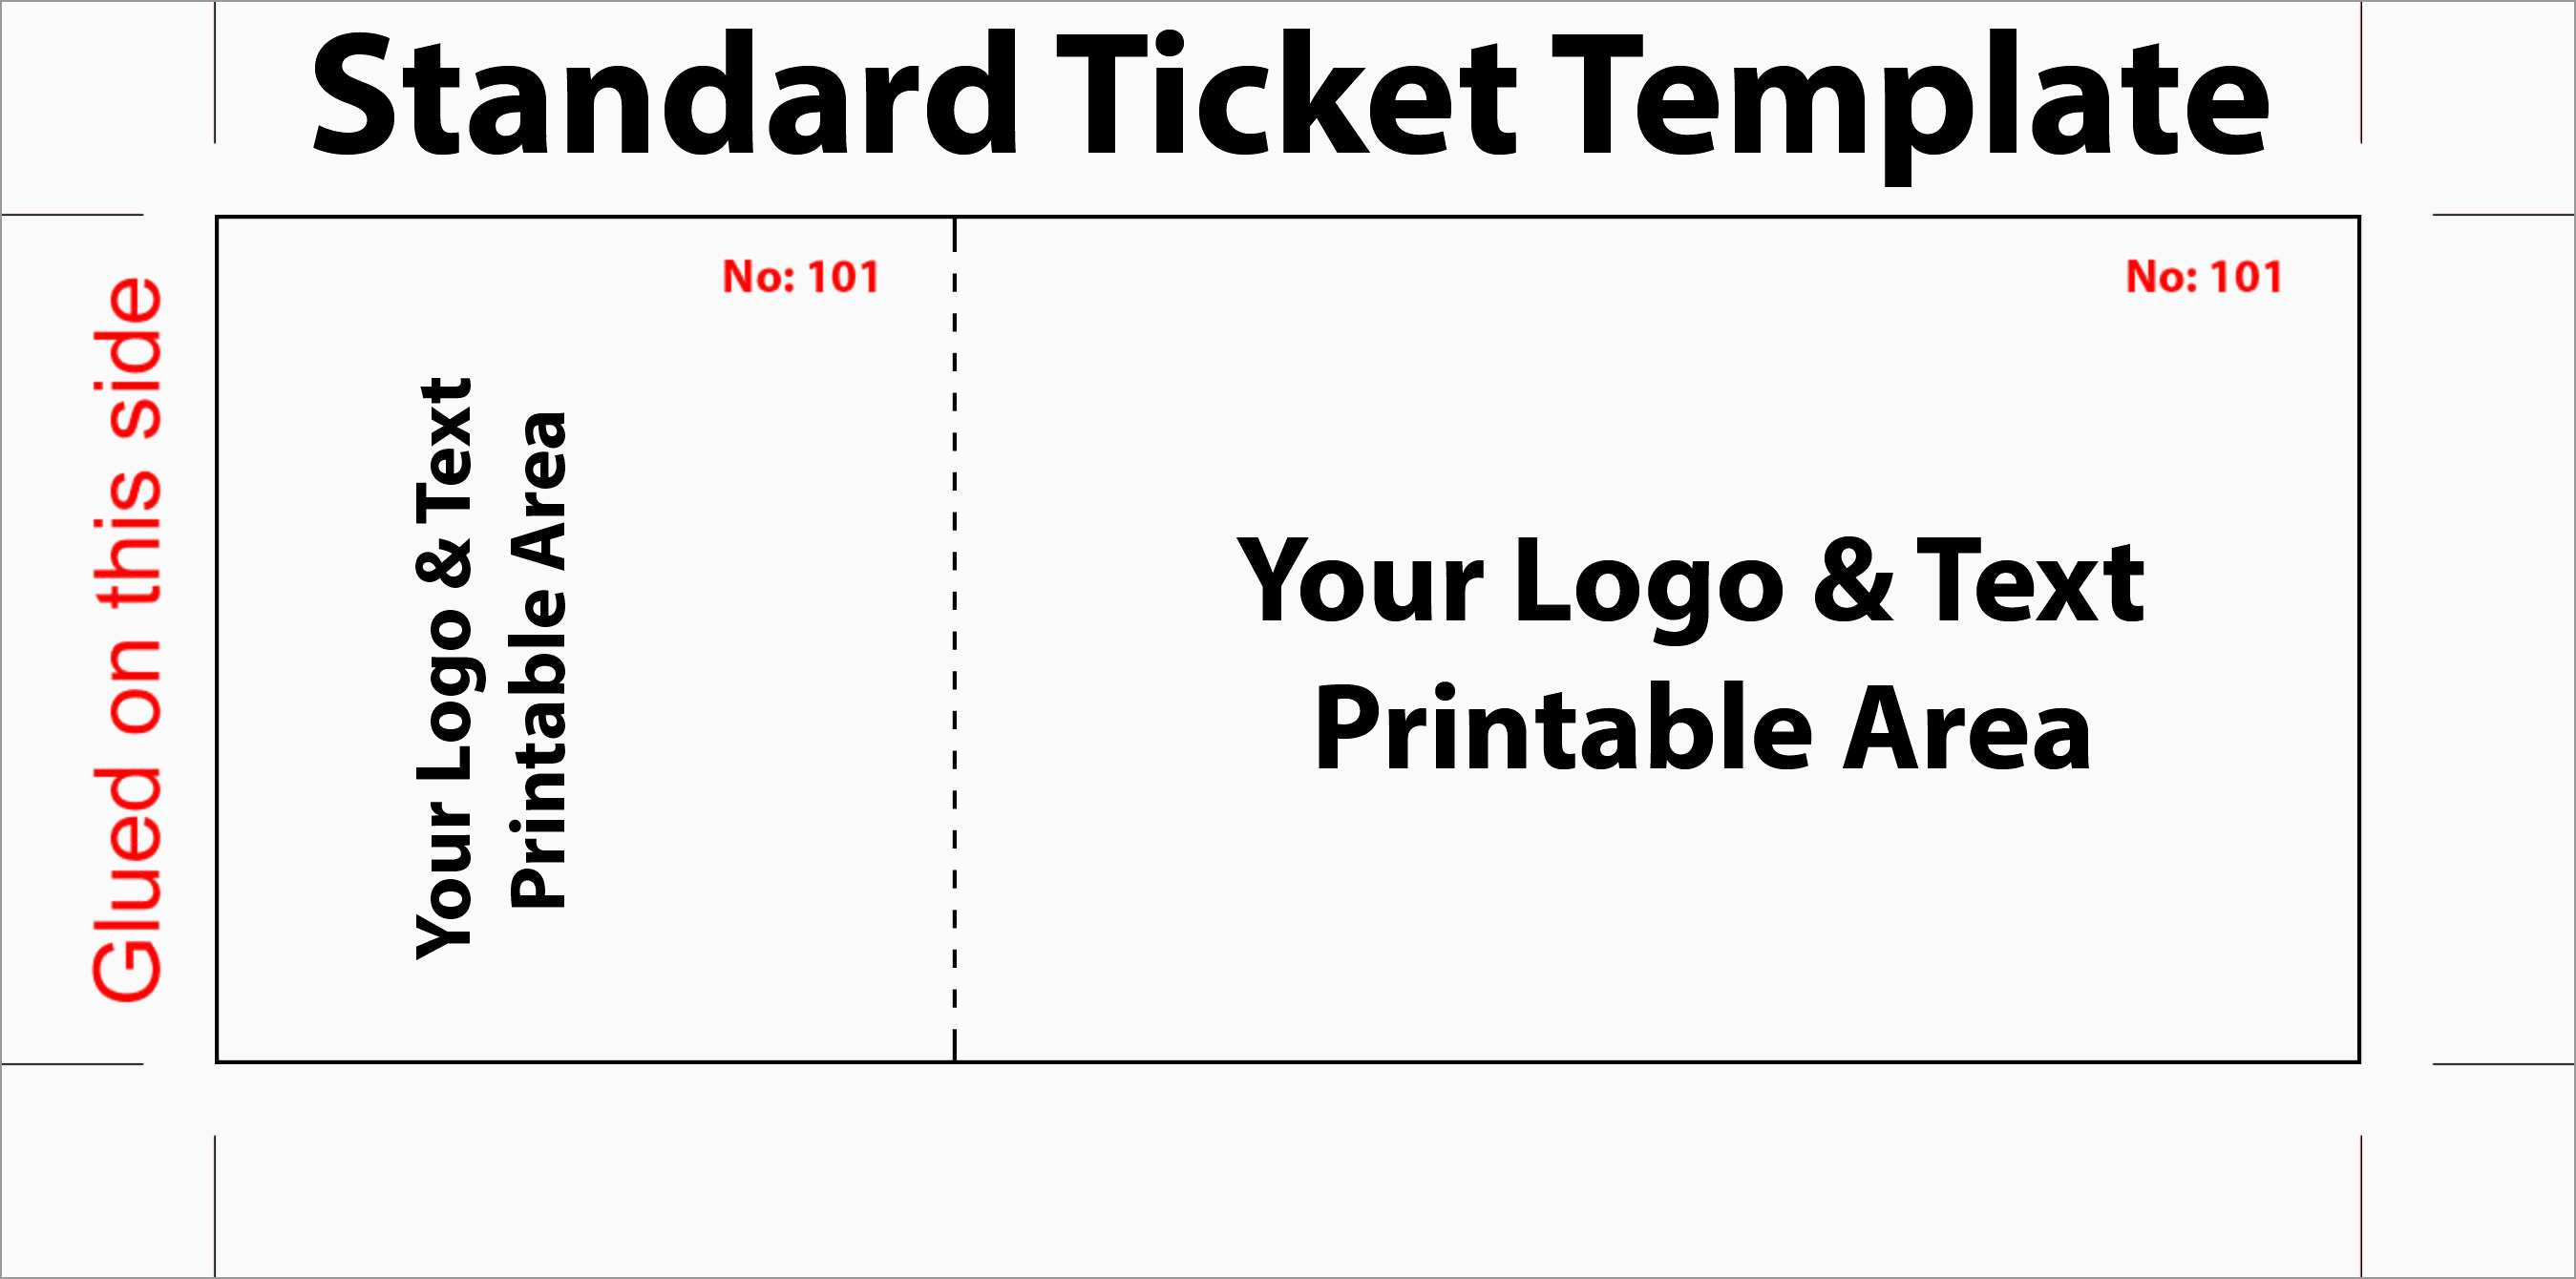 Concert Ticket Design Template Free Prettier Free Editable Standard Ticket Template Example For Concert